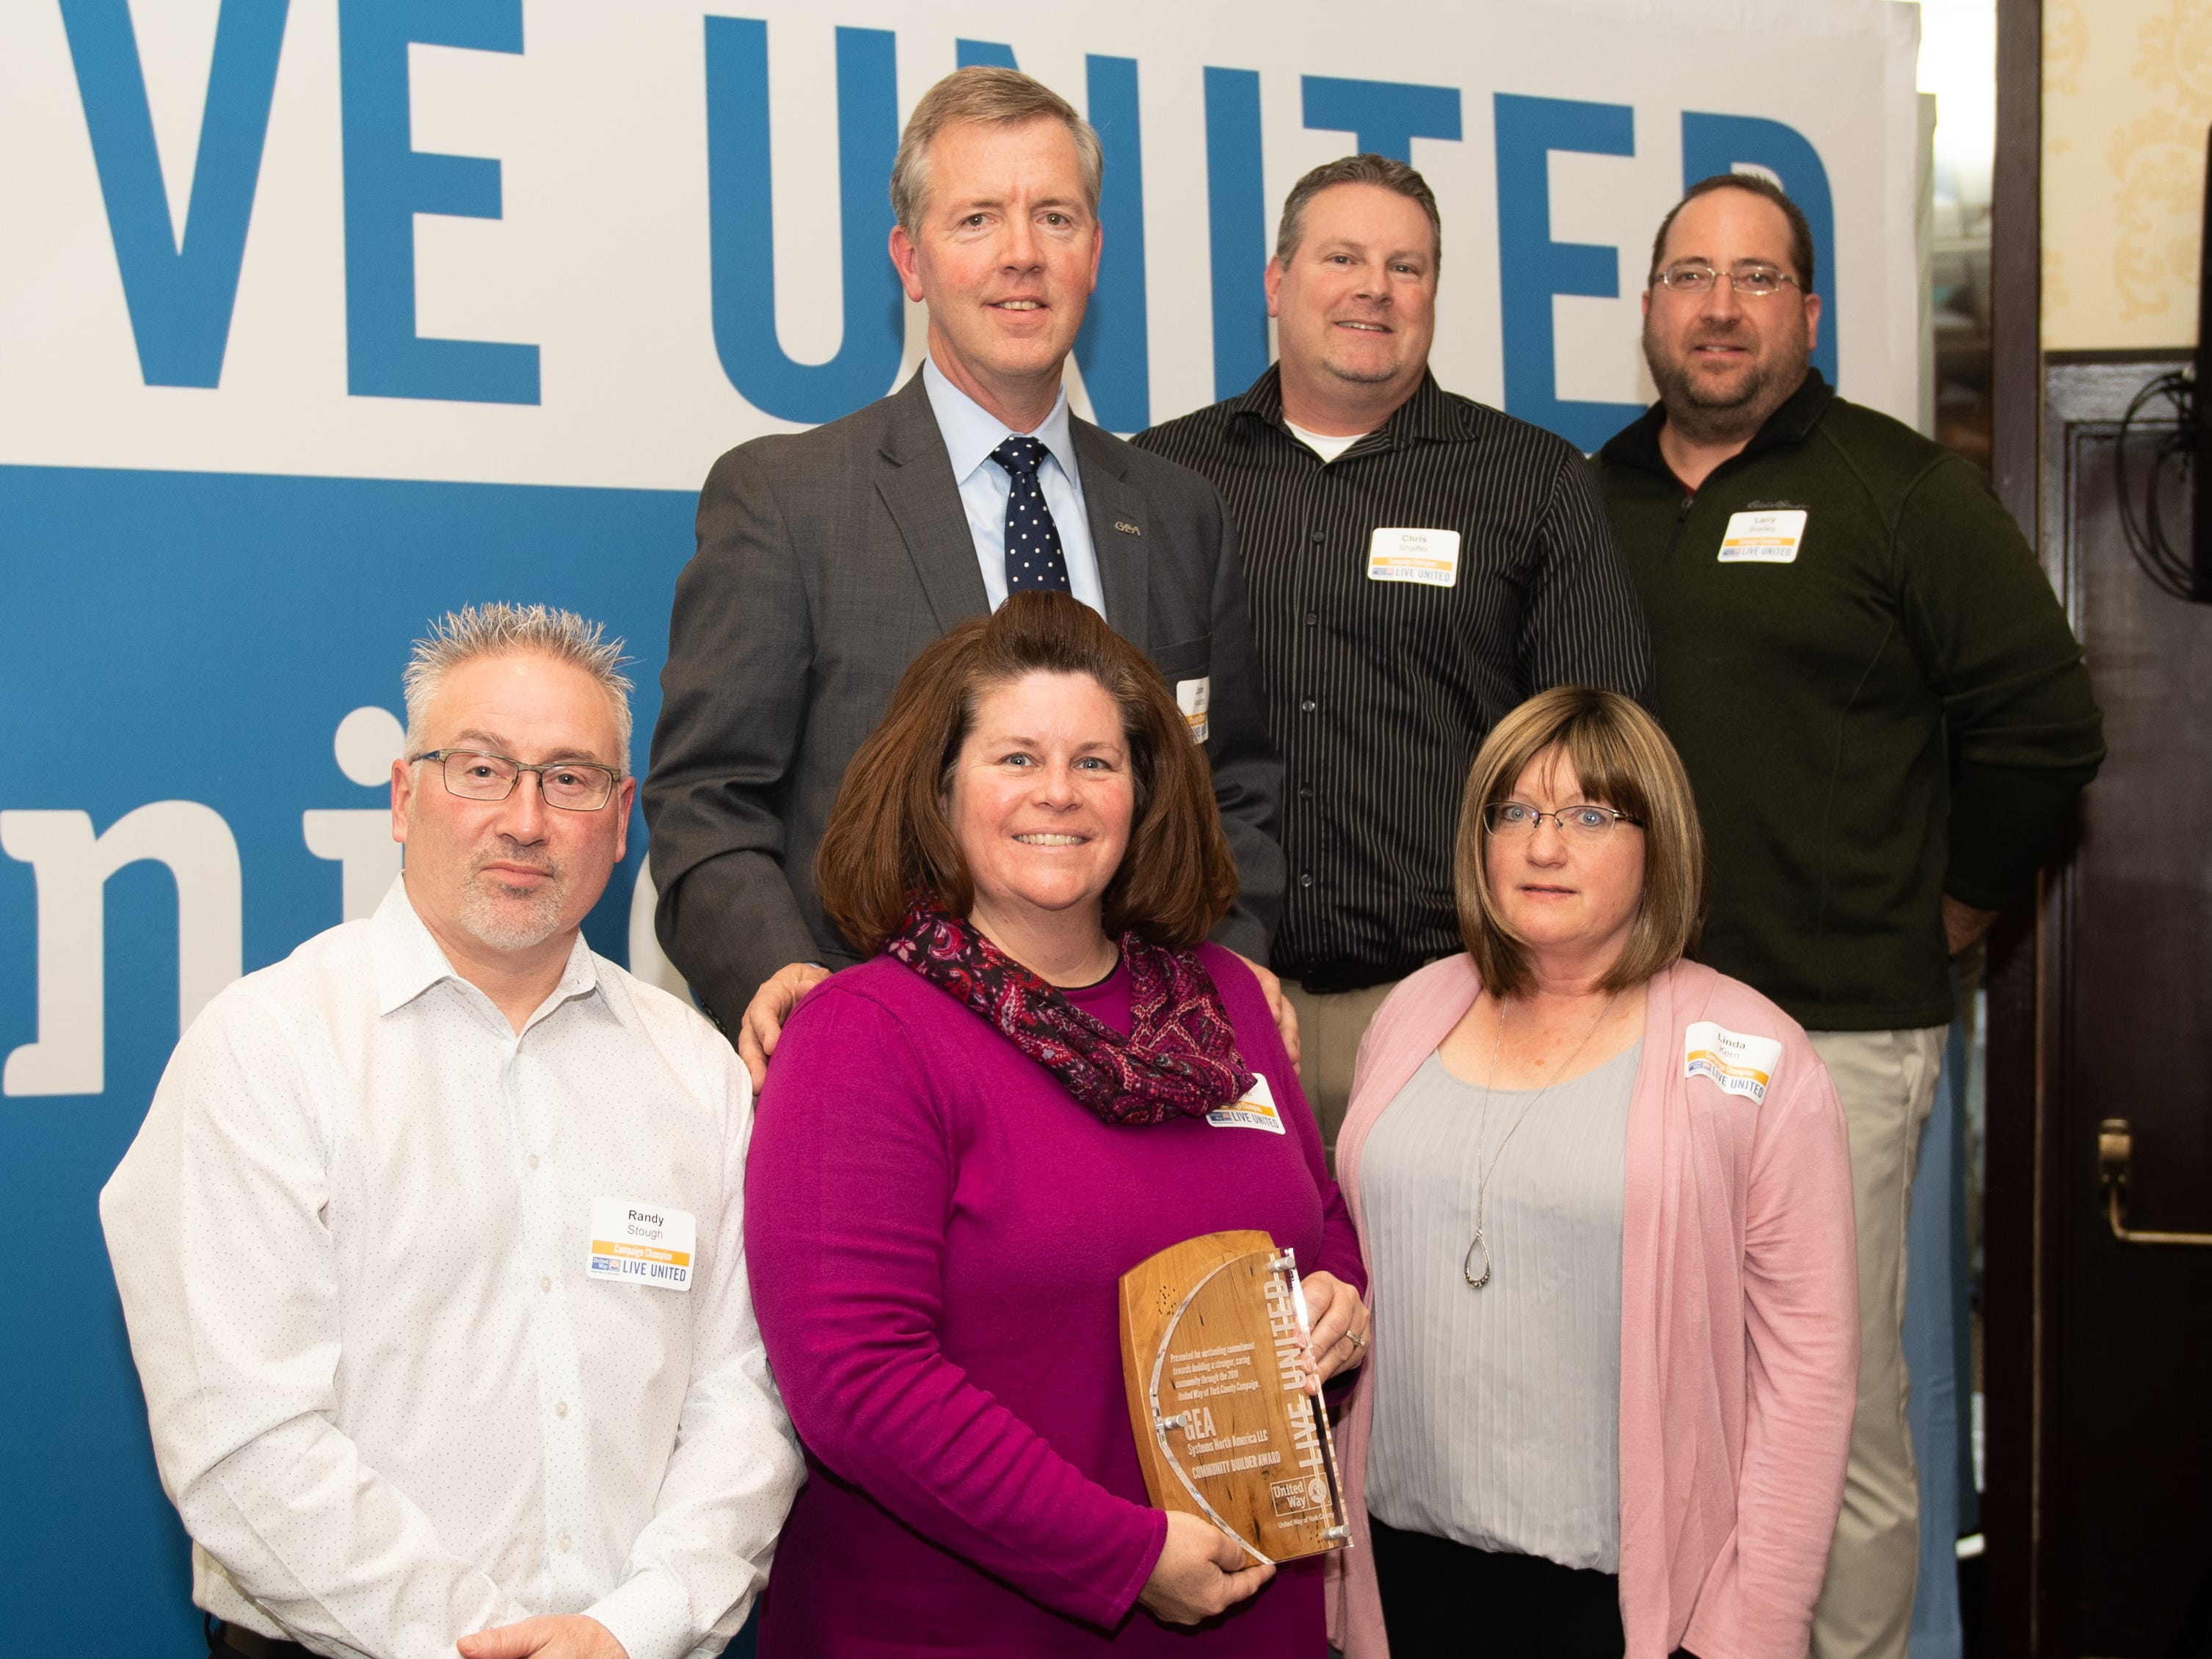 Representatives of GEA Systems North America LLC pose with their Community Builder Award during the 2018 United Way Campaign Celebration, February 7, 2019.